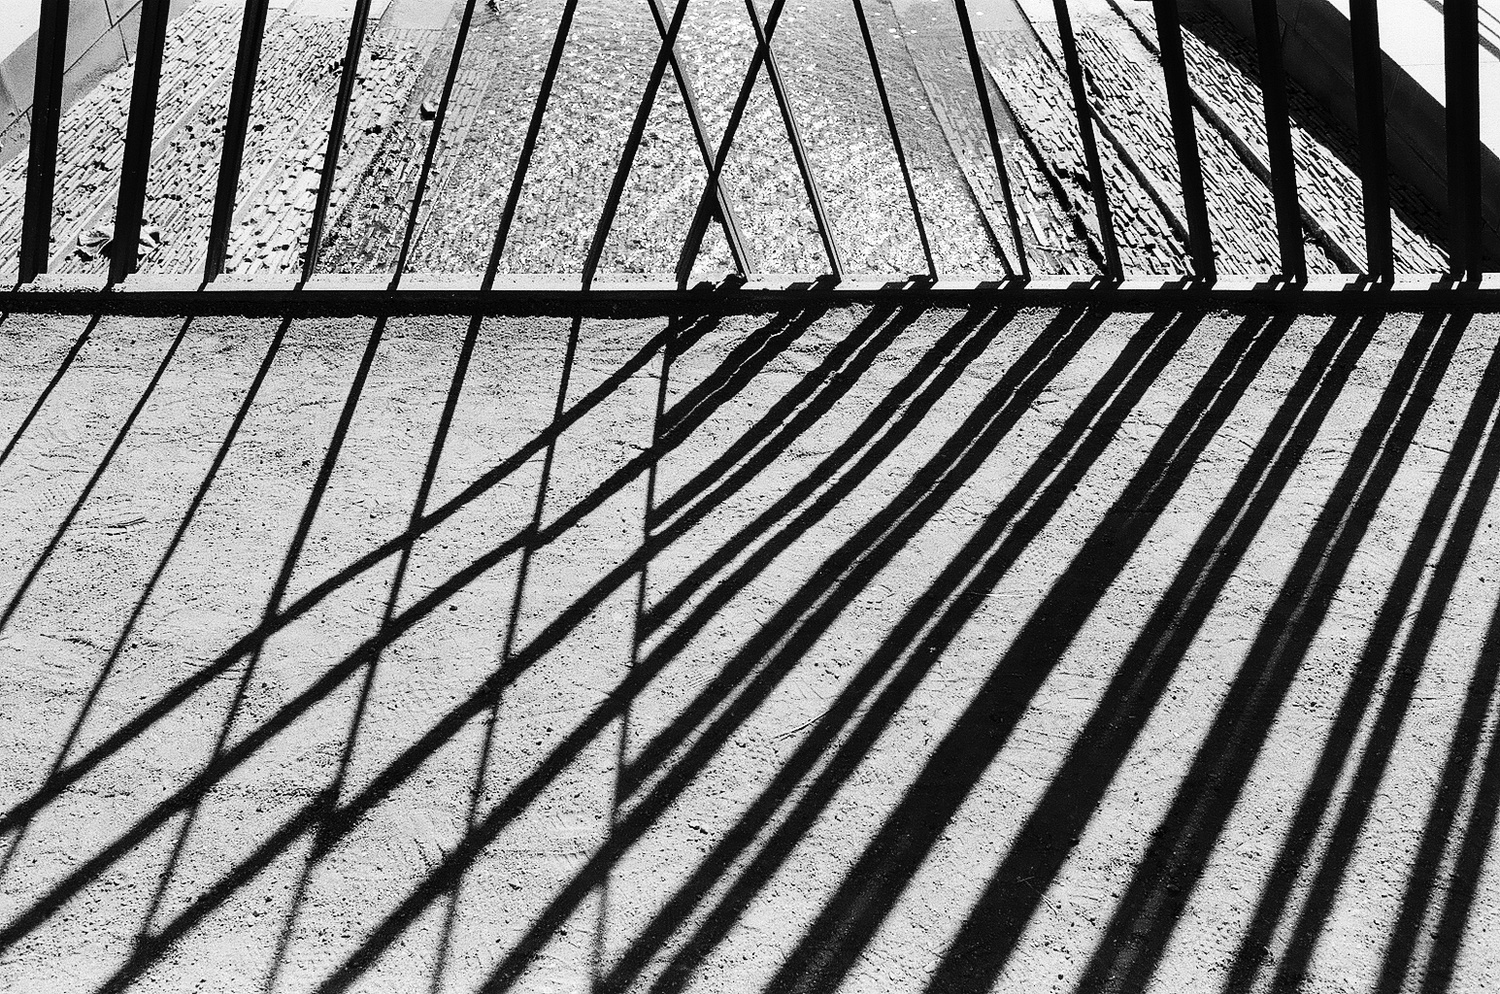 Fence Shadows by Evan Smith